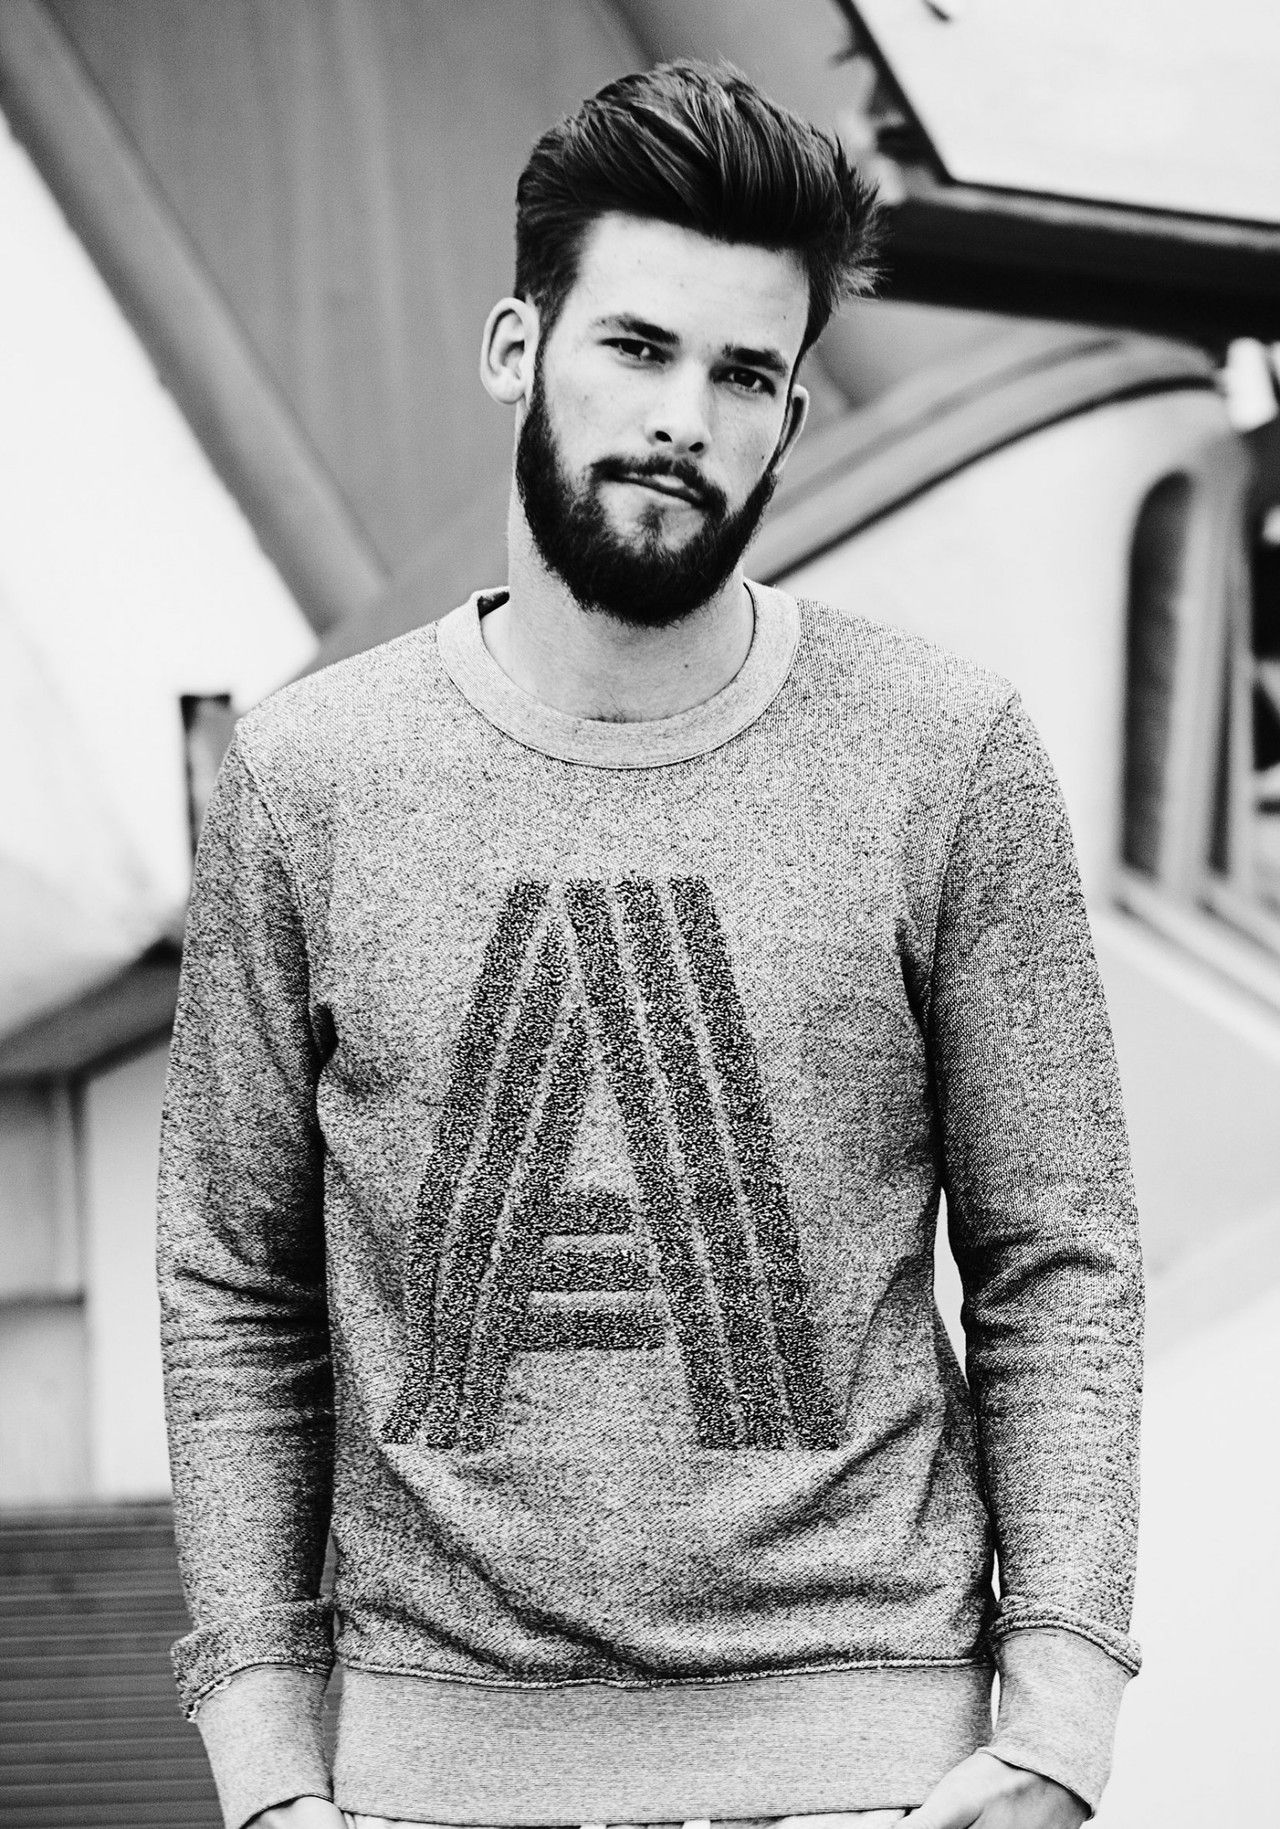 Hipster men hairstyles 25 hairstyles for hipster men look -  Hair Beard Http Stylesvogue Com Stylish Boys Hairstyle Men S